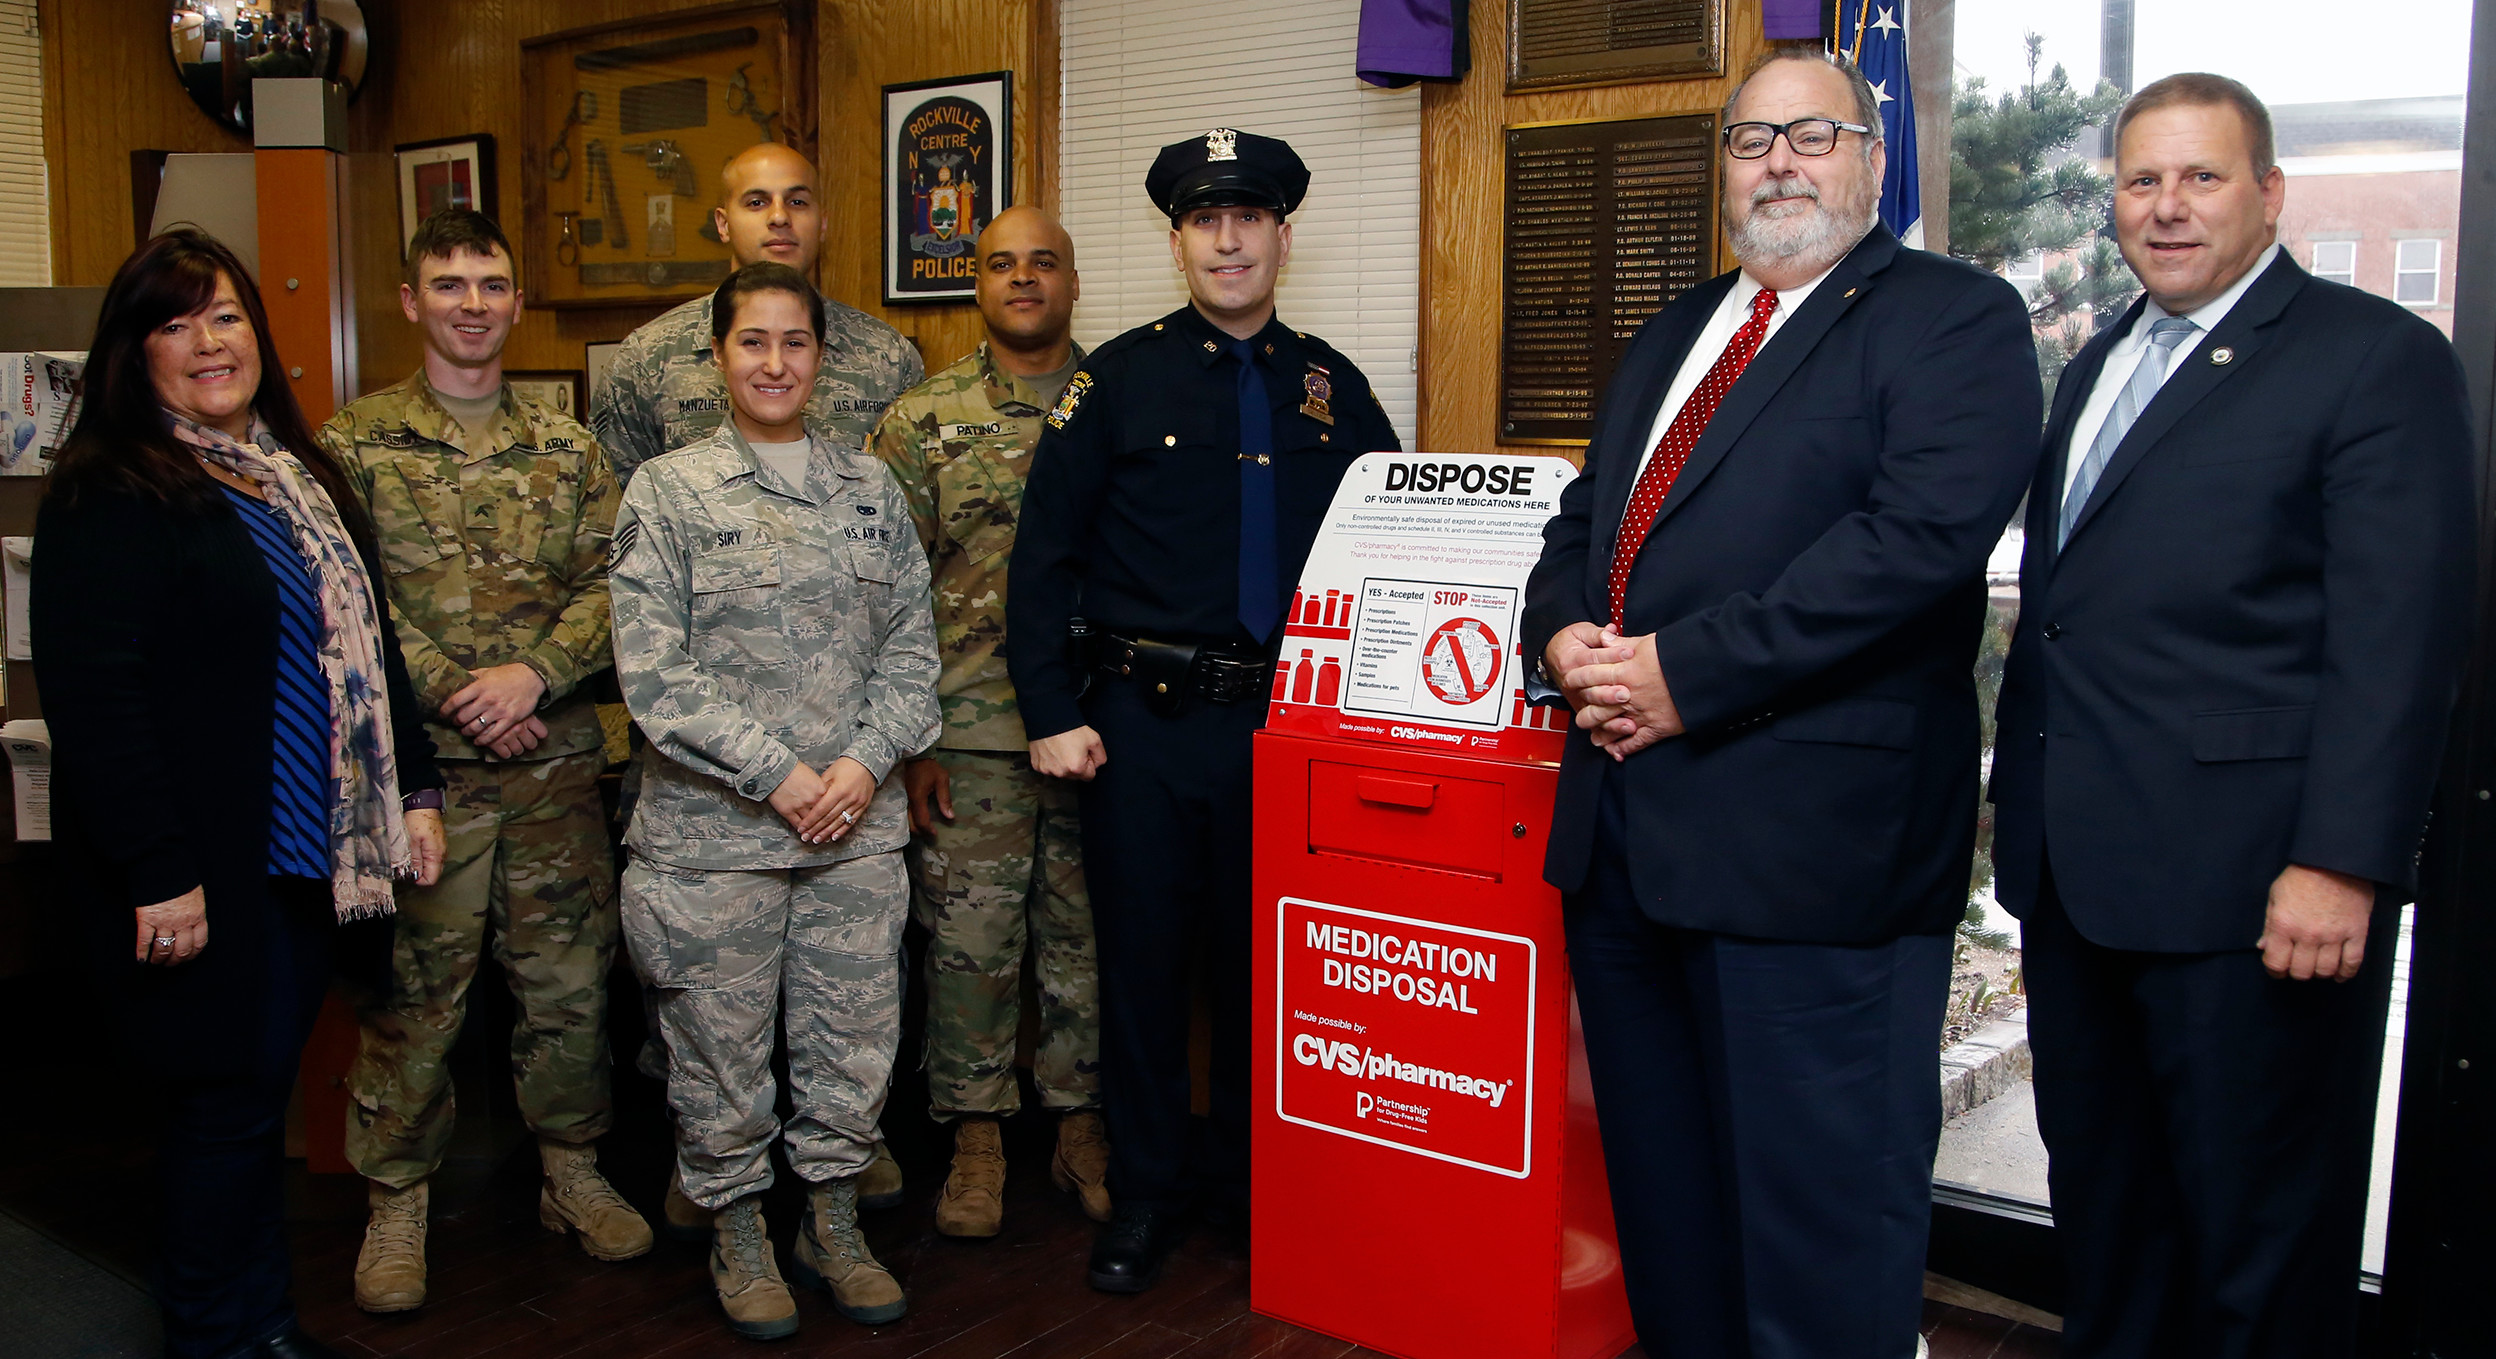 Police and community representatives show off the station's new drop-off box, which will give residents an opportunity to dispose of expired or unused medications in a safe and confidential manner.